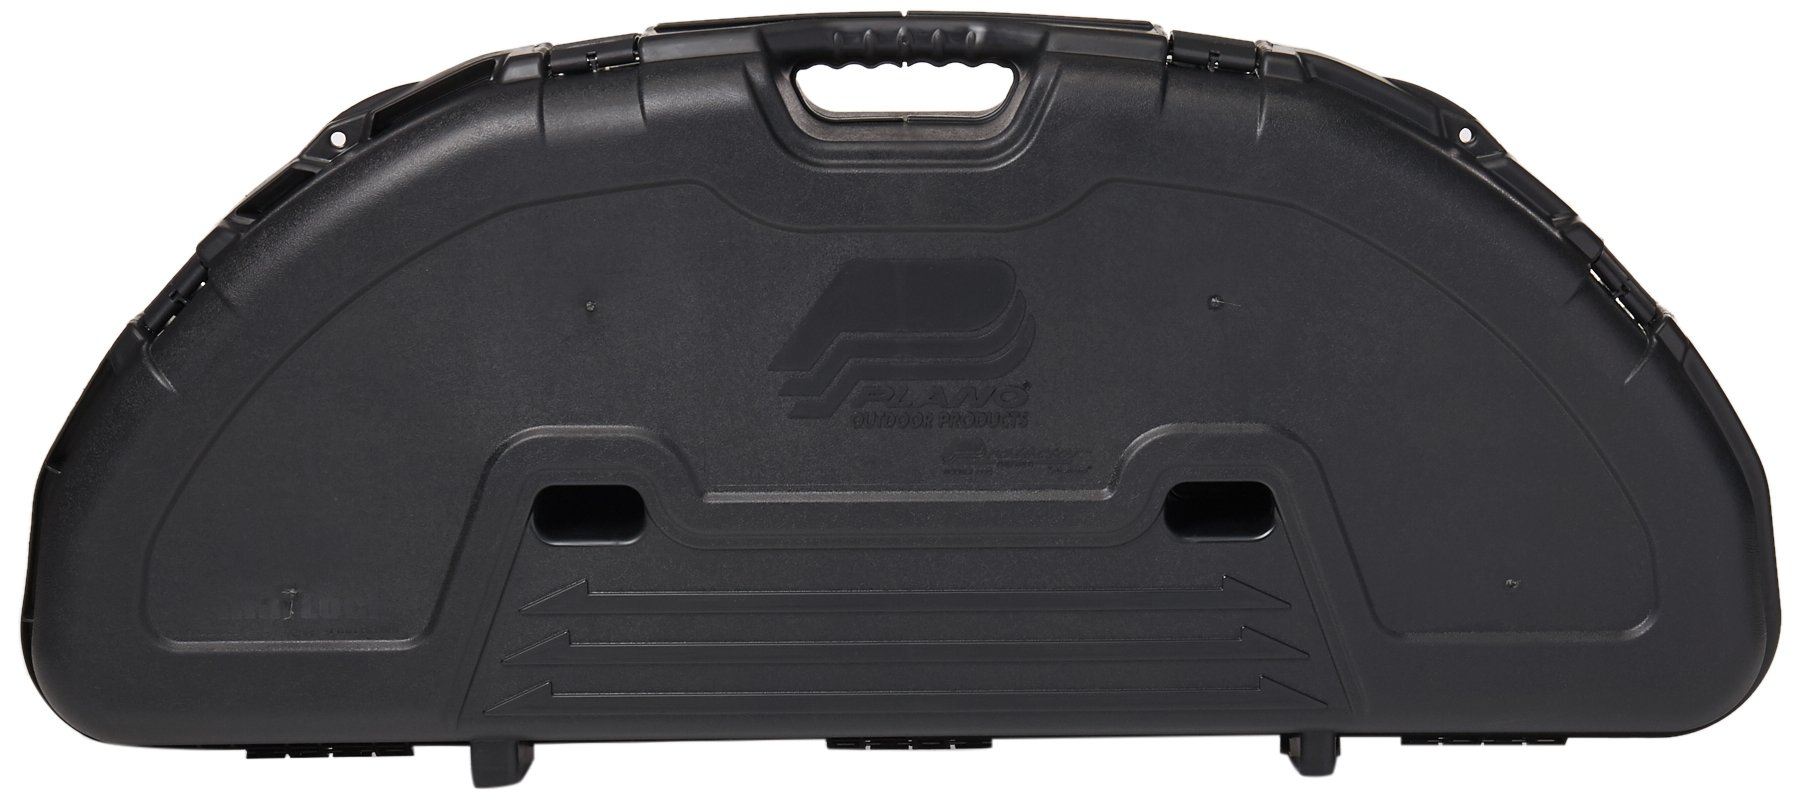 Plano Protector Compact Bow Case (Black)